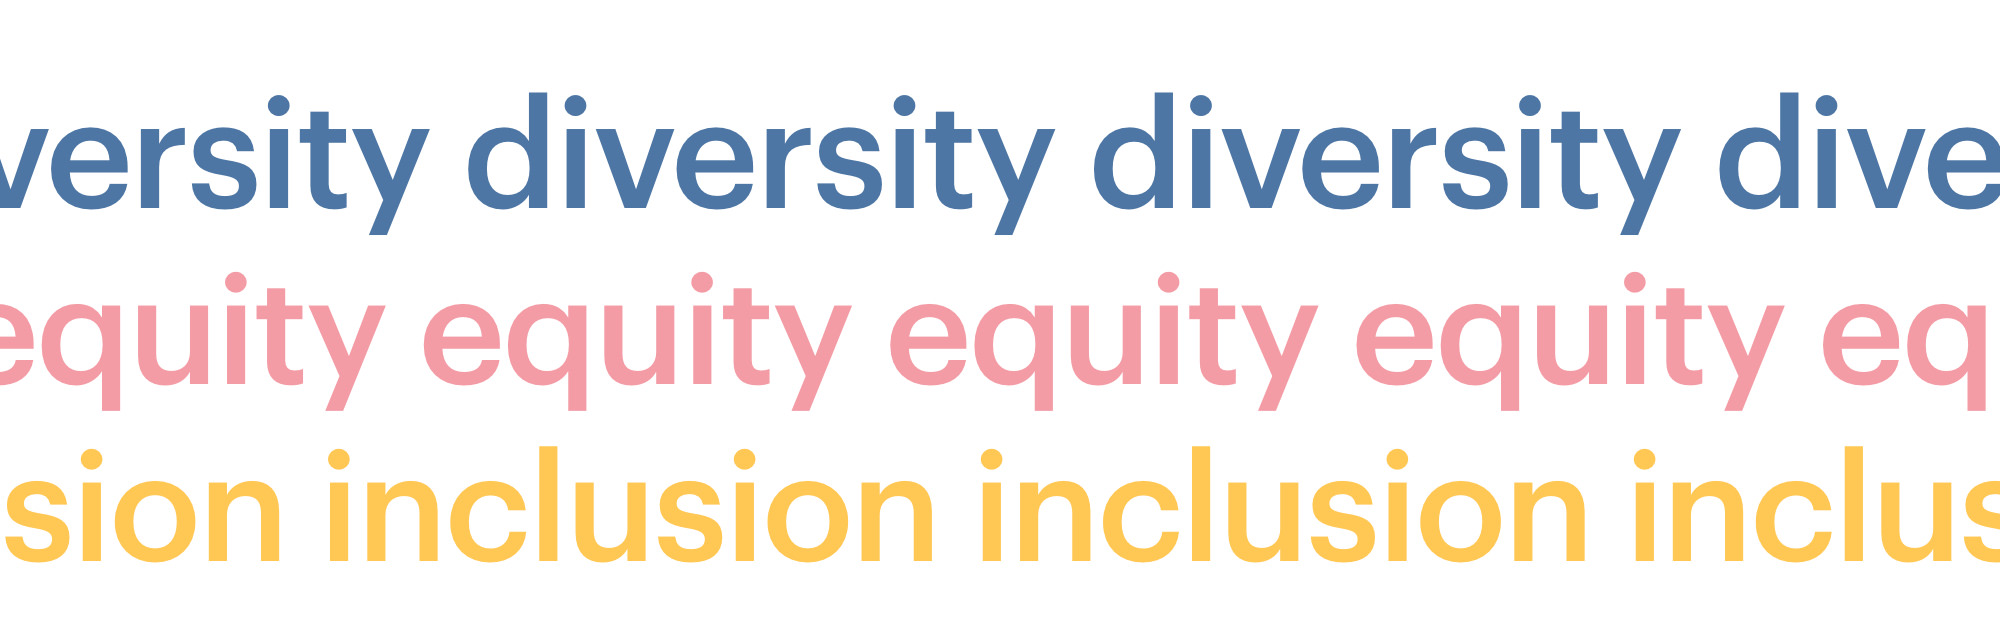 the words diversity, equality, and inclusion repeated in primary colors